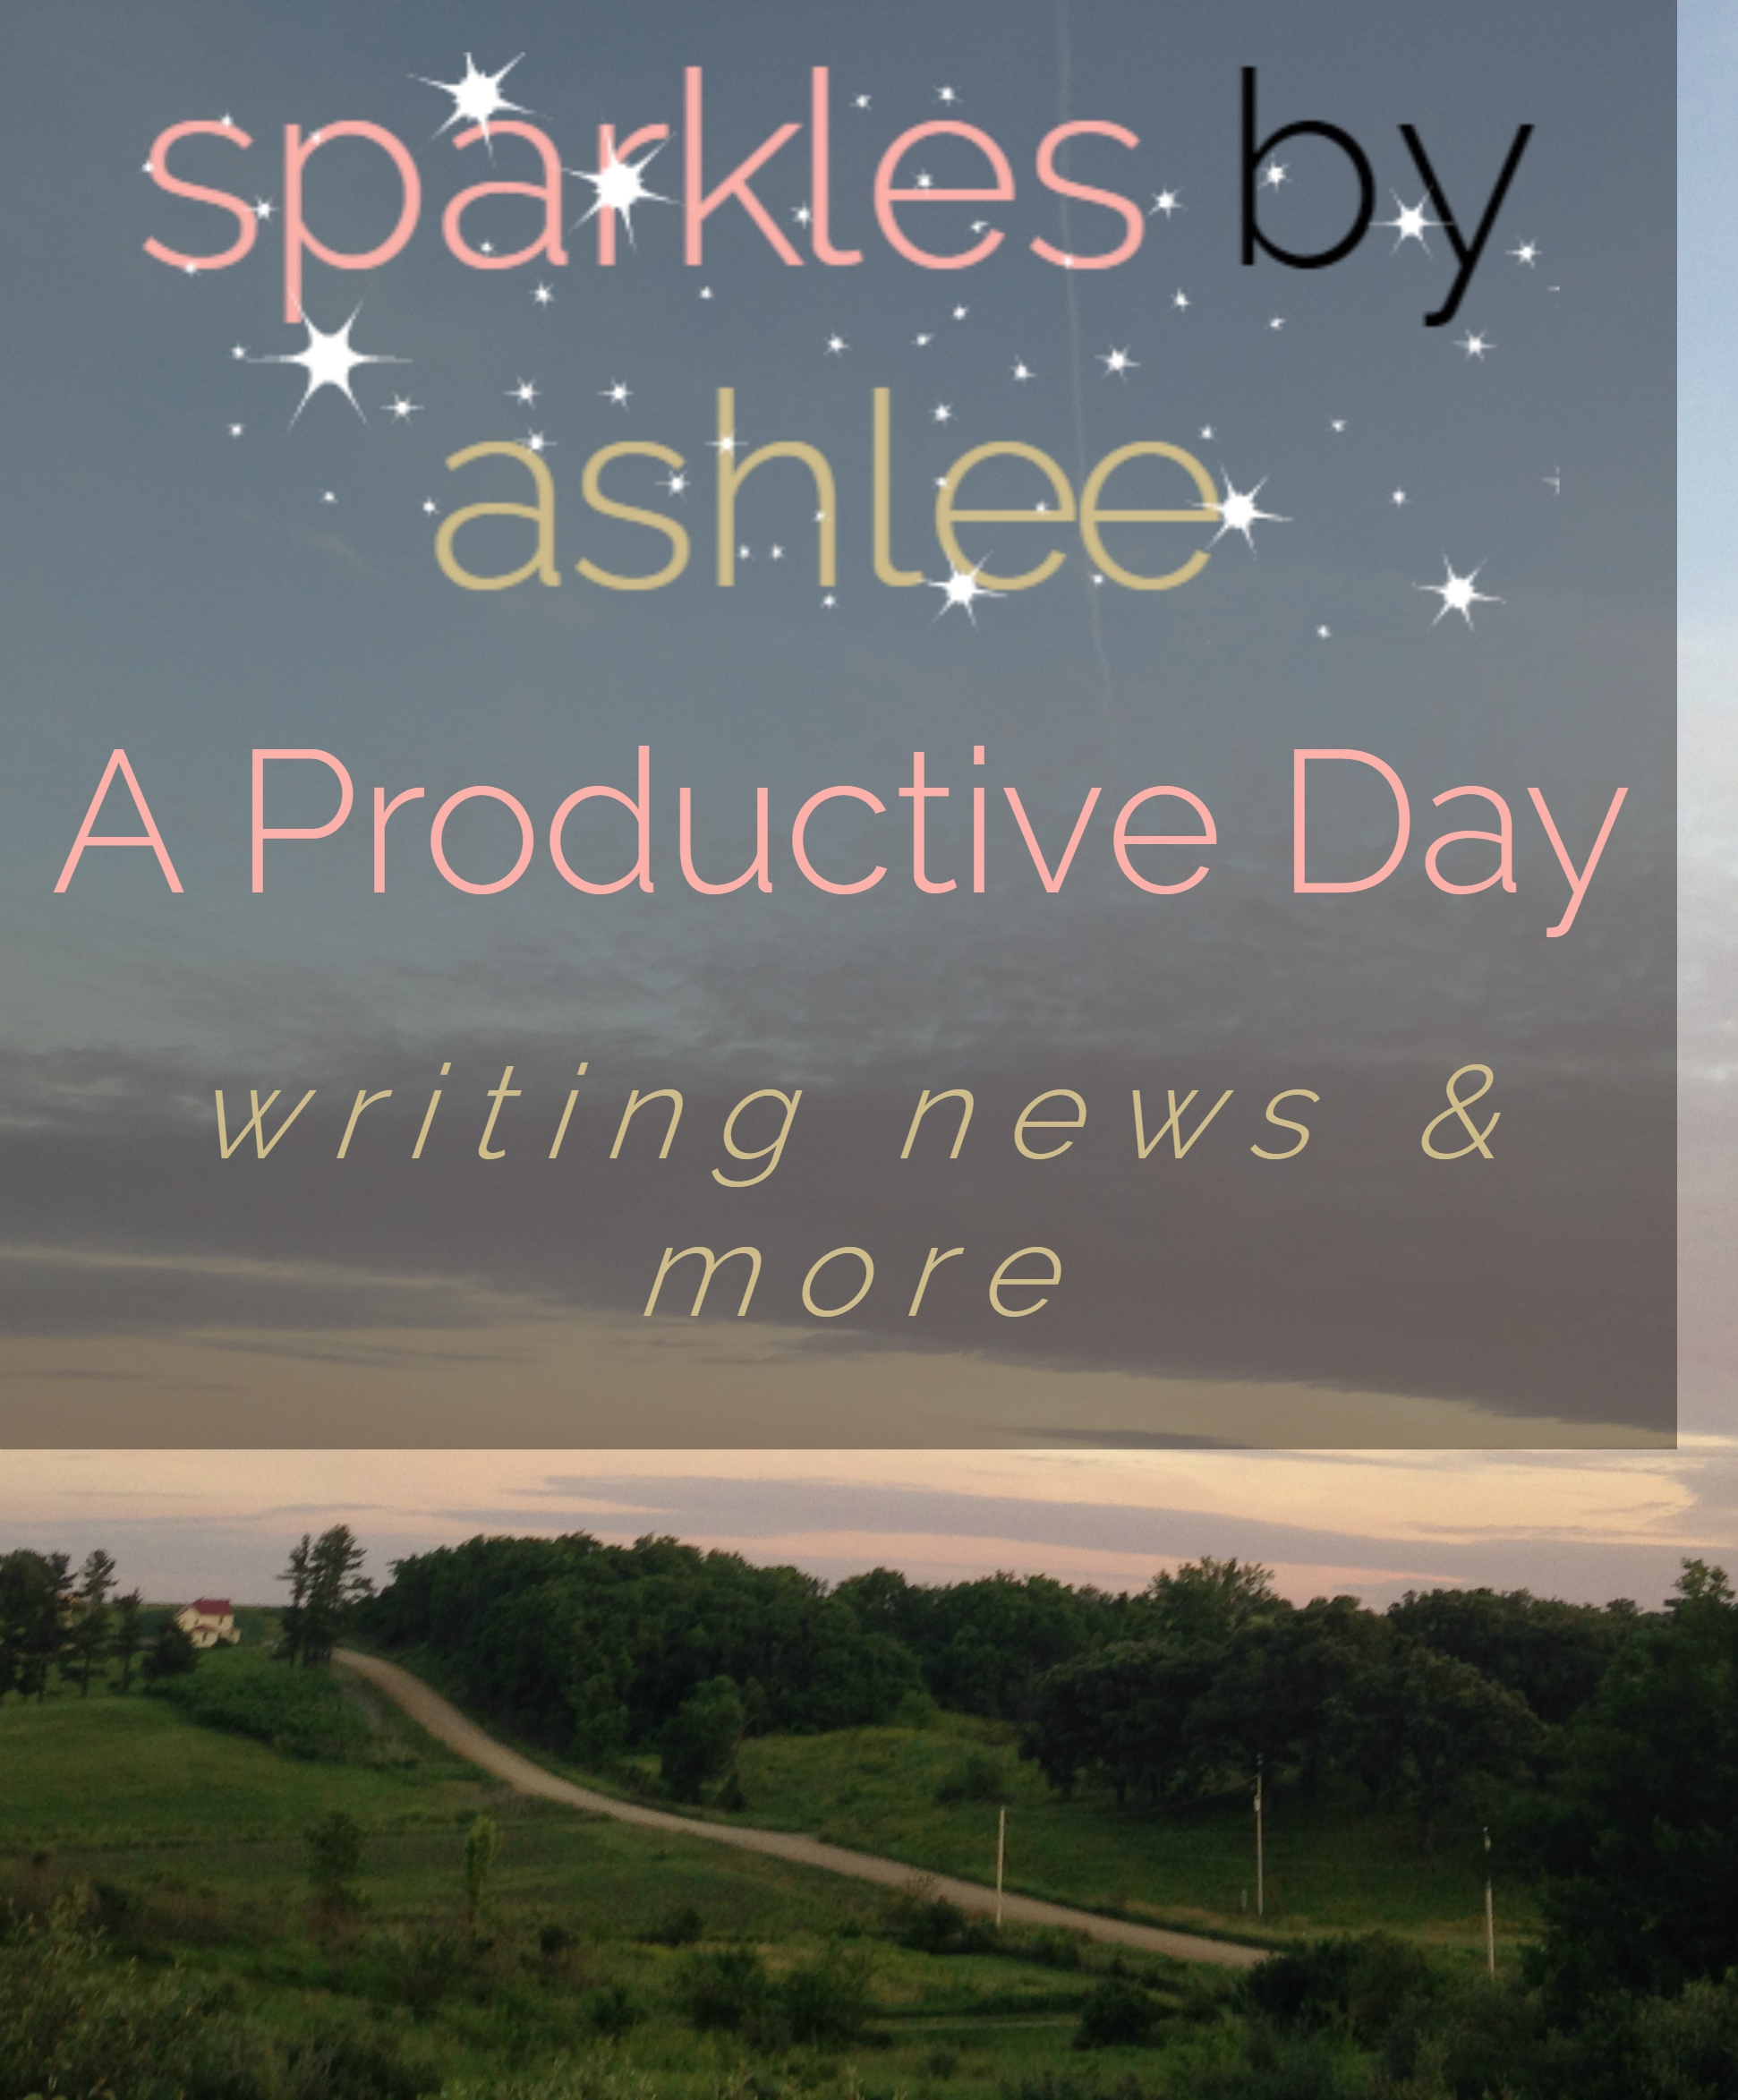 A-Productive-Day-Sparkles-by-Ashlee.jpg